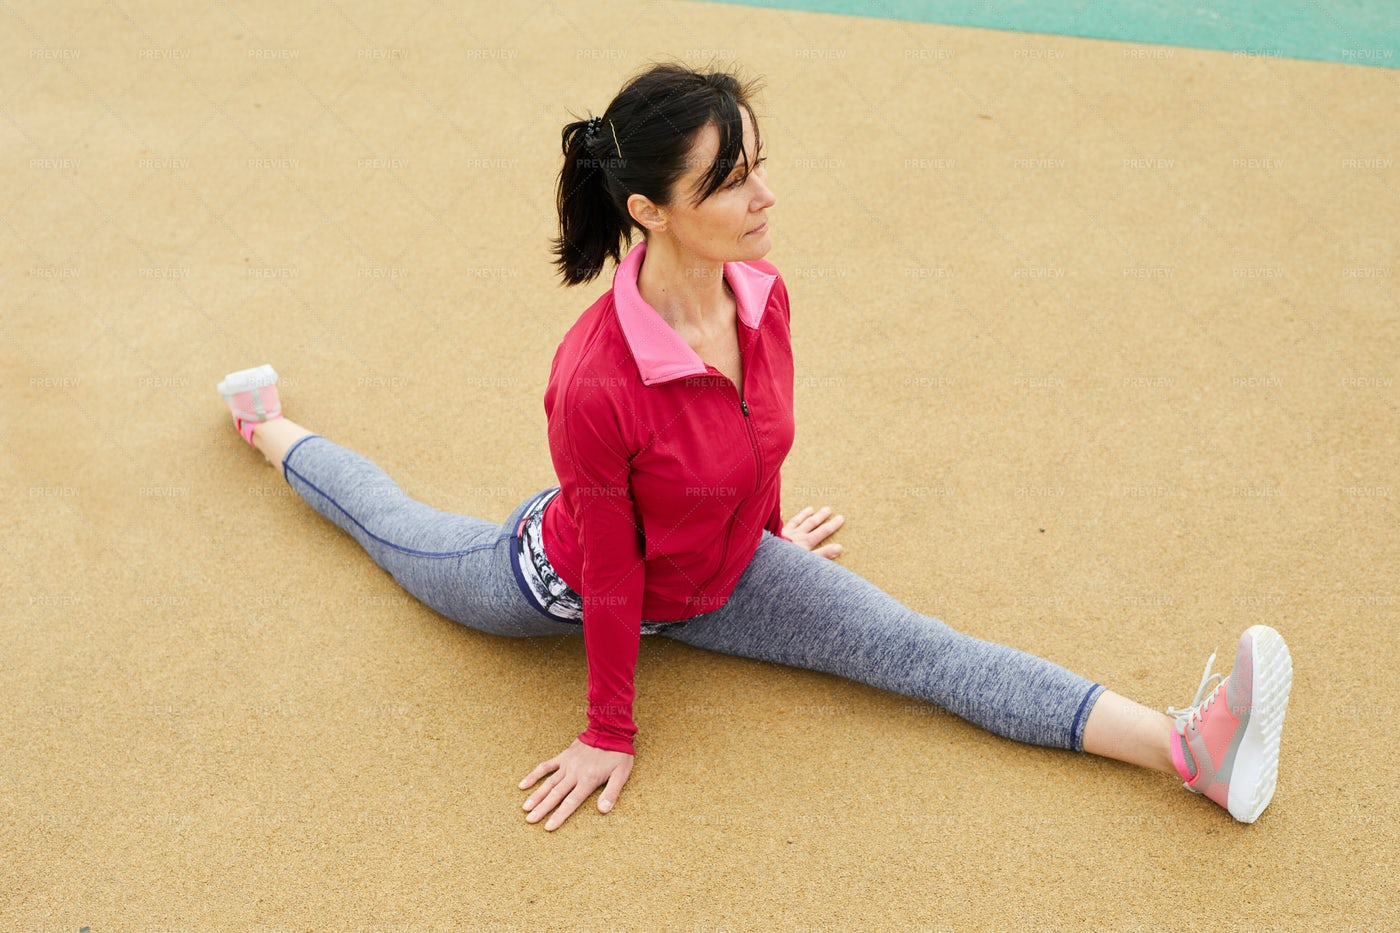 Mature Woman Doing Splits: Stock Photos